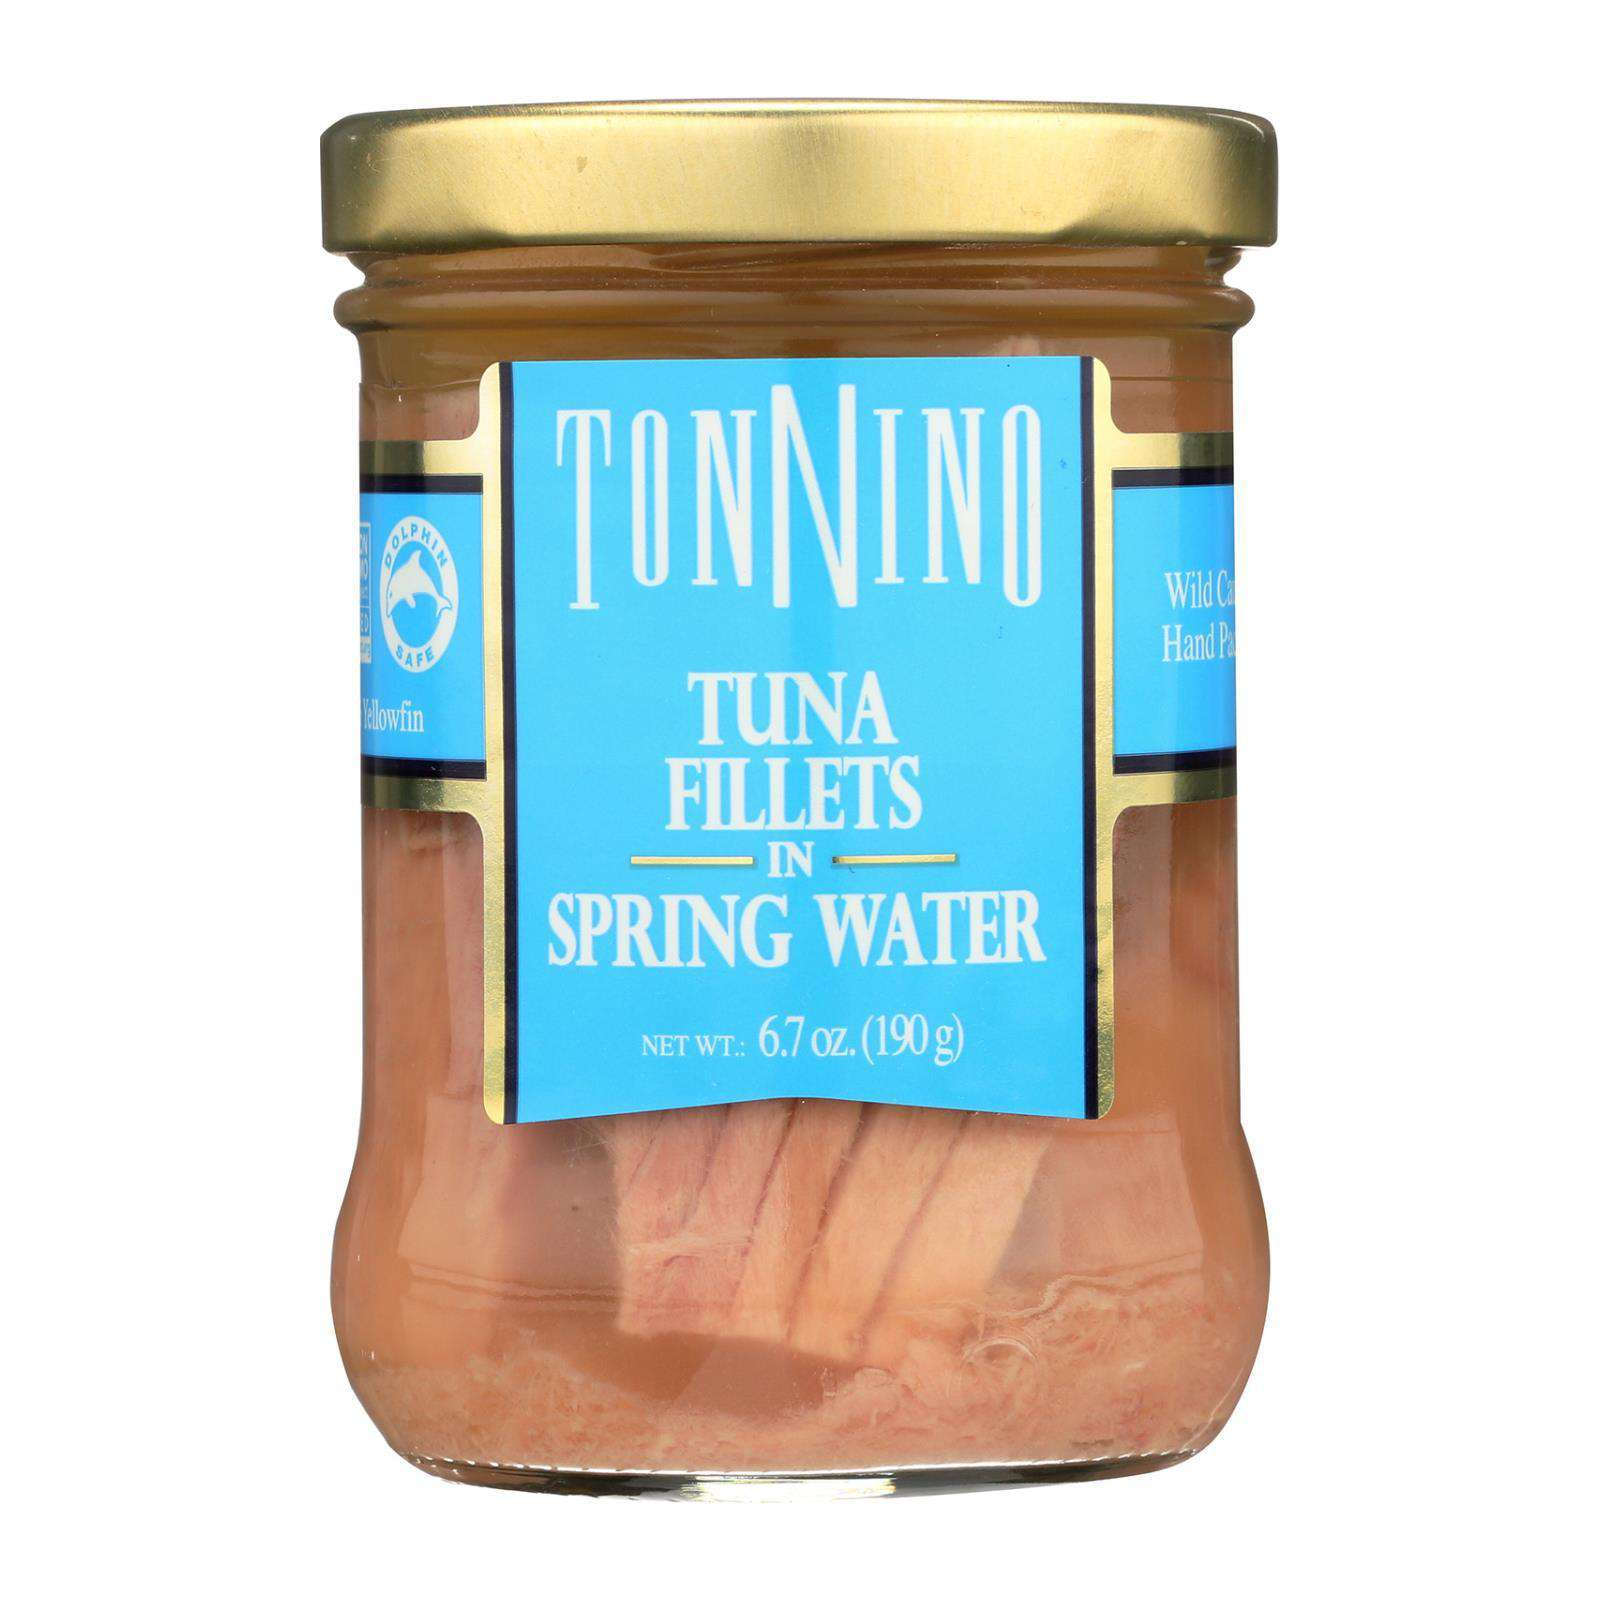 Tonnino Tuna Fillets - Spring Water - Case Of 6 - 6.7 Oz. - BeeGreen